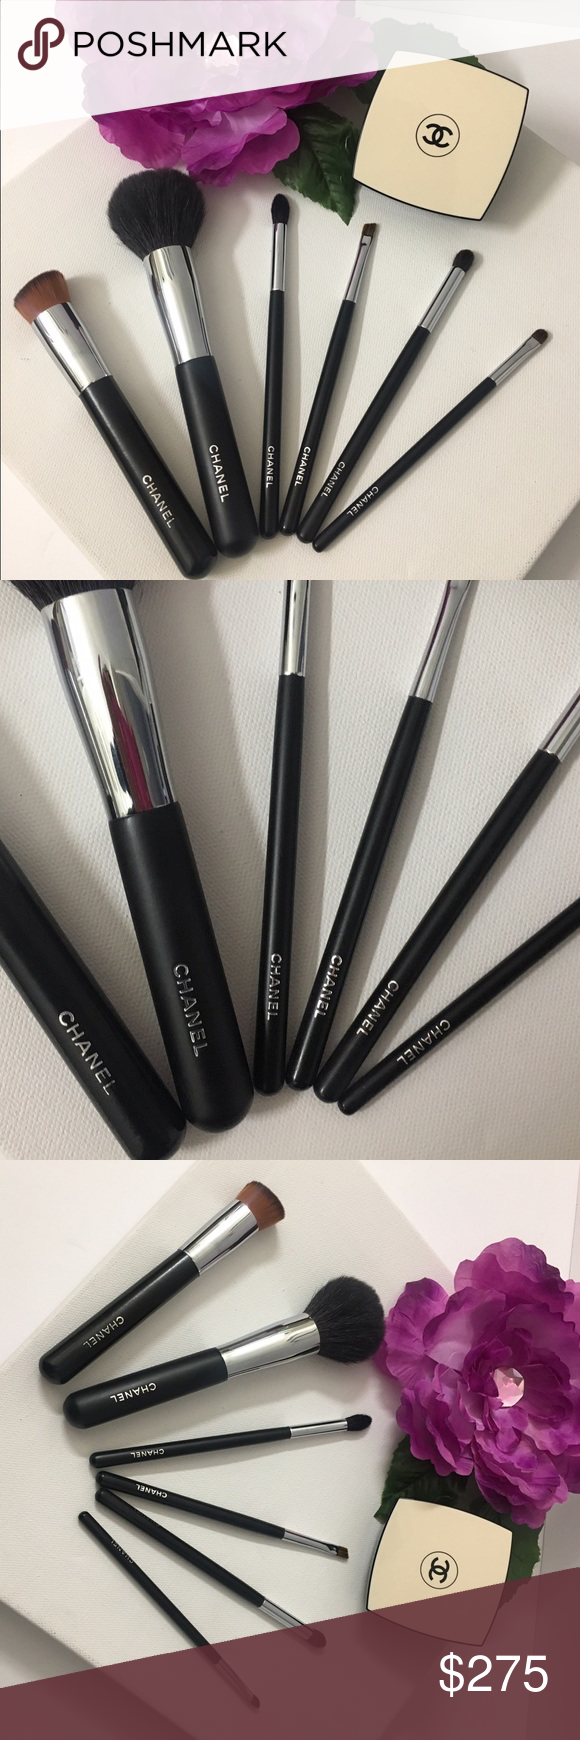 Authentic Chanel x5 brush from Set pro kit Boutique